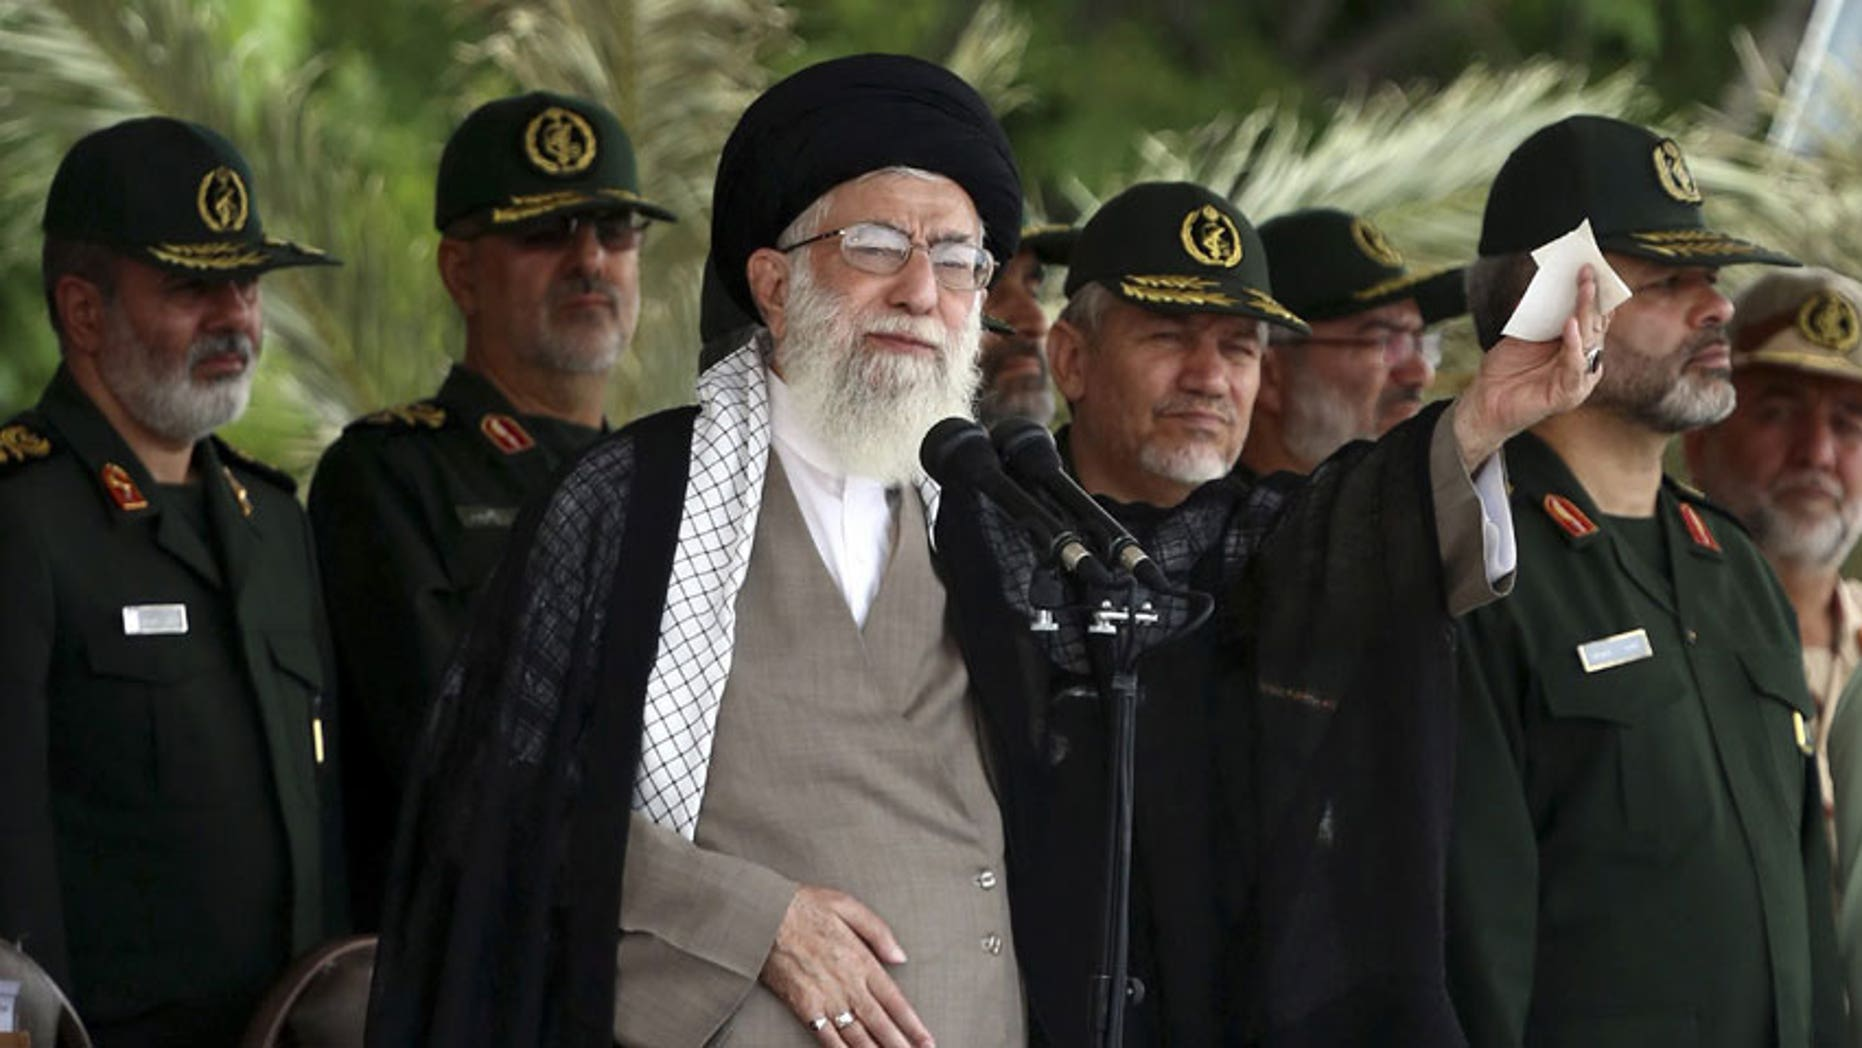 Iranians have little faith Supreme Leader Ali Khamenei will allow a fair vote in the presidential elections. (AP)